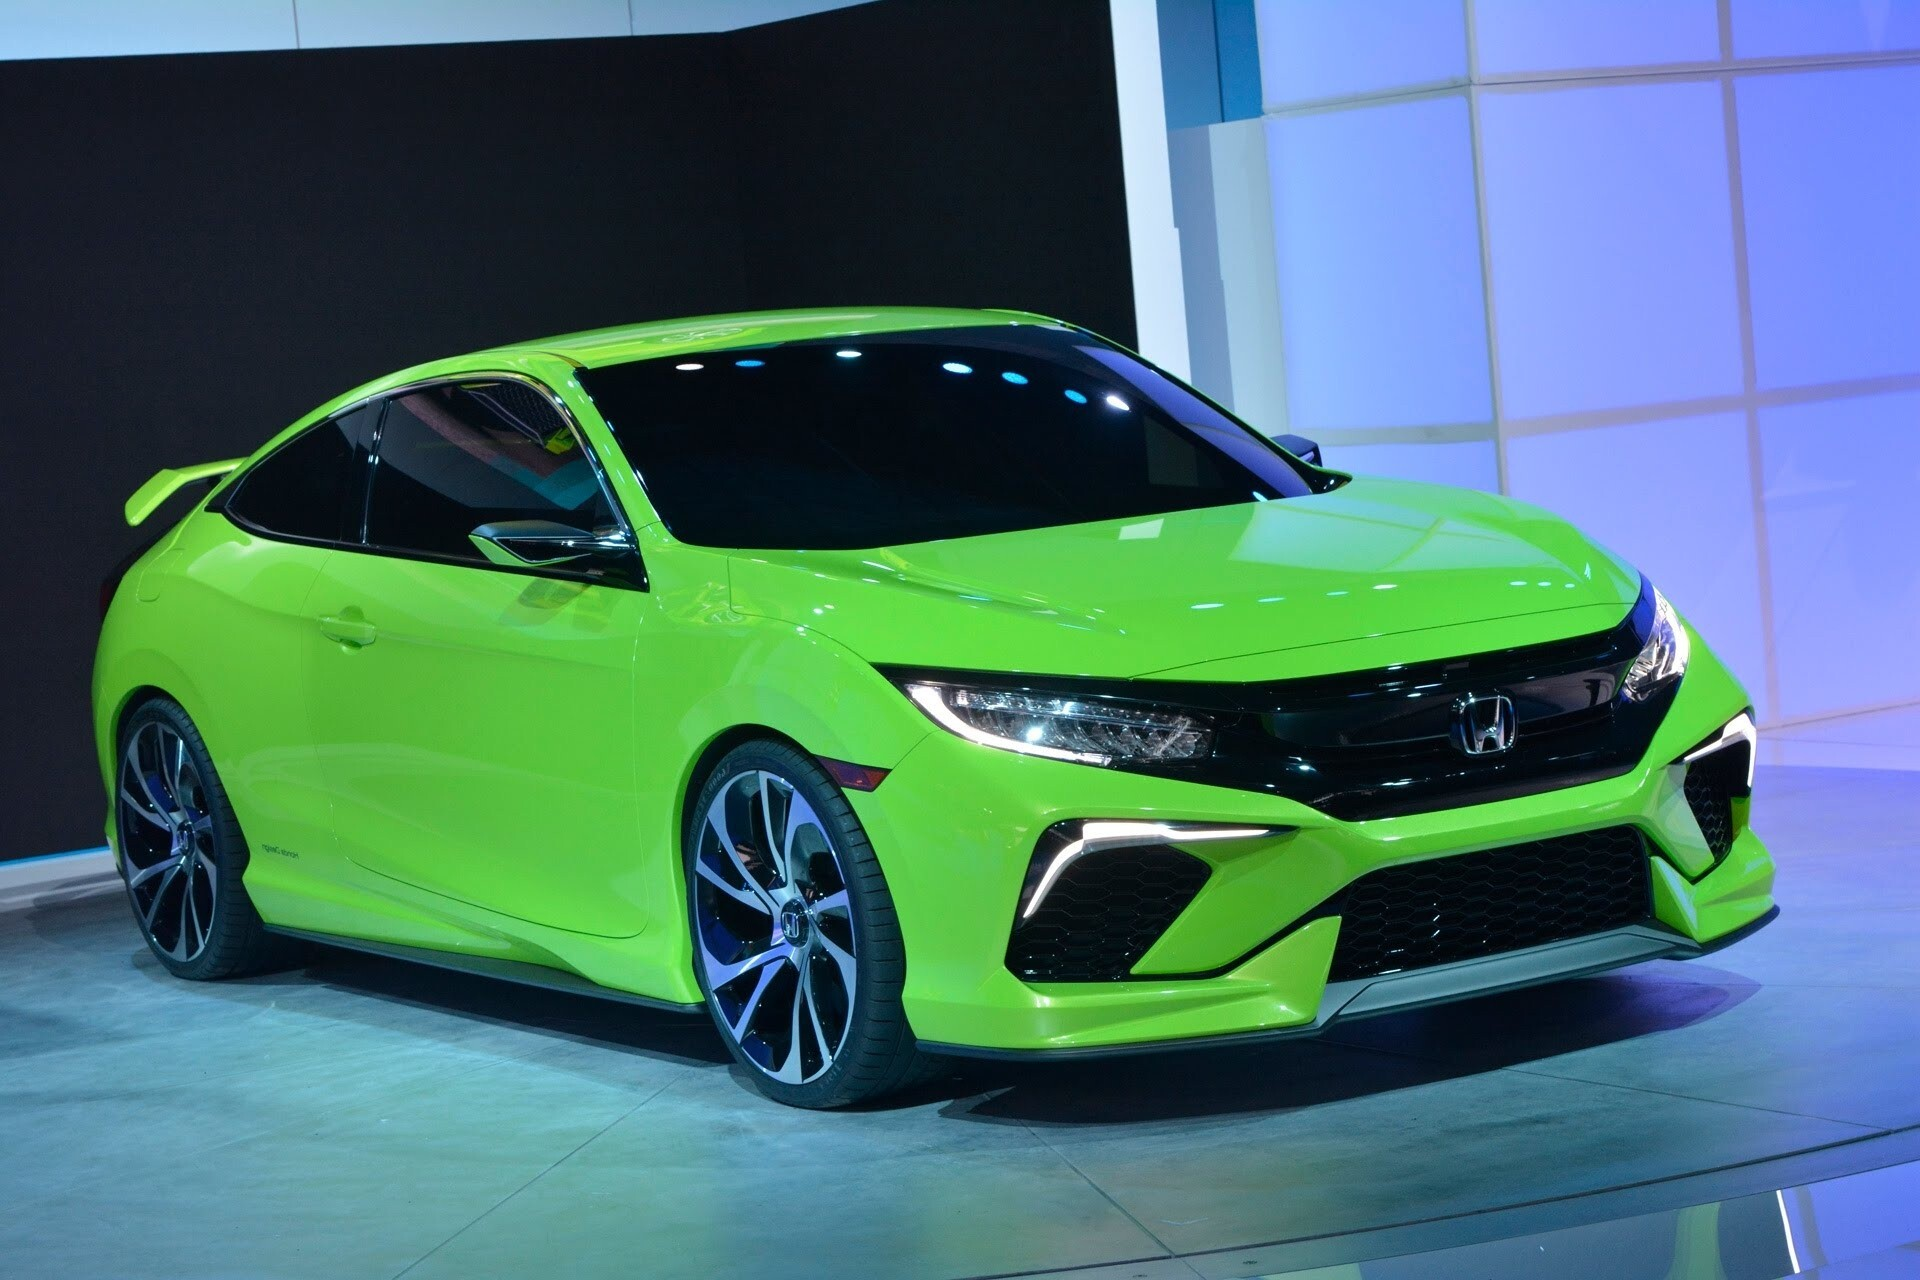 New Honda Civic Two Seater Car Hd Wallpapers Hd Wallpapers